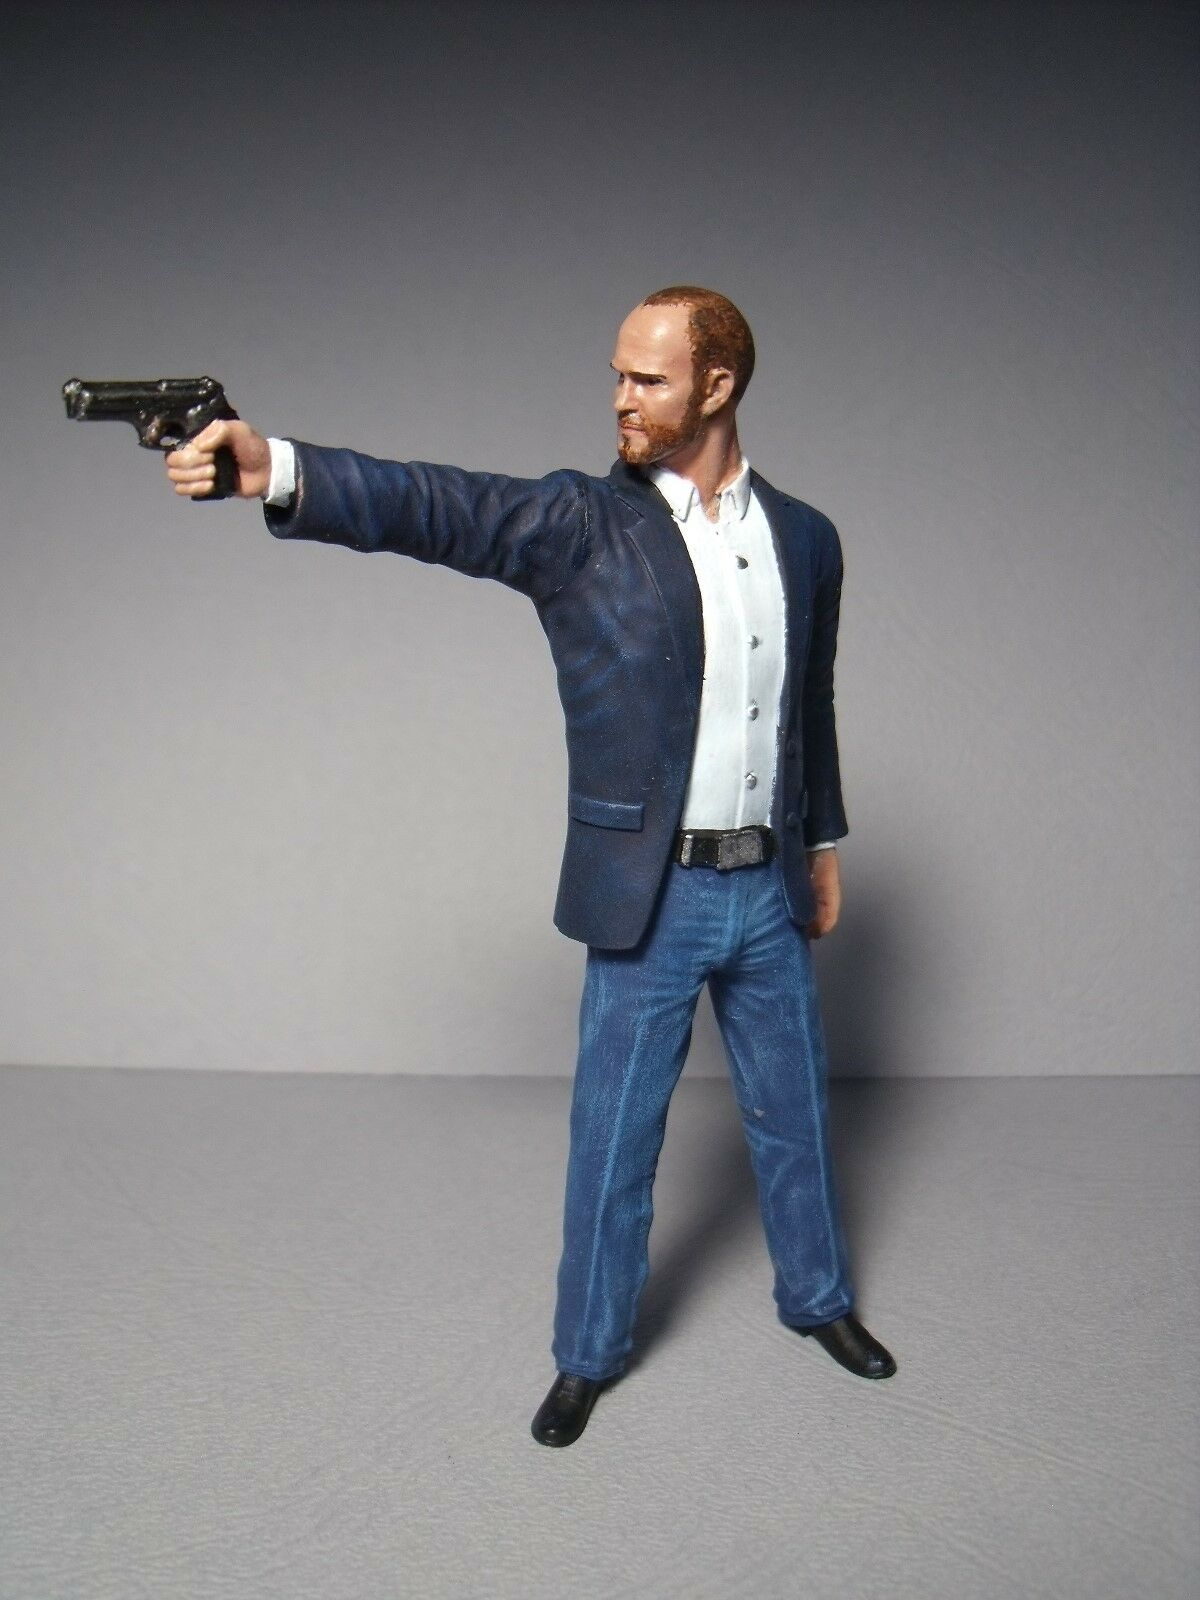 1 18 pintadas personaje casi and Furious Jason Statham Vroom fur mattel